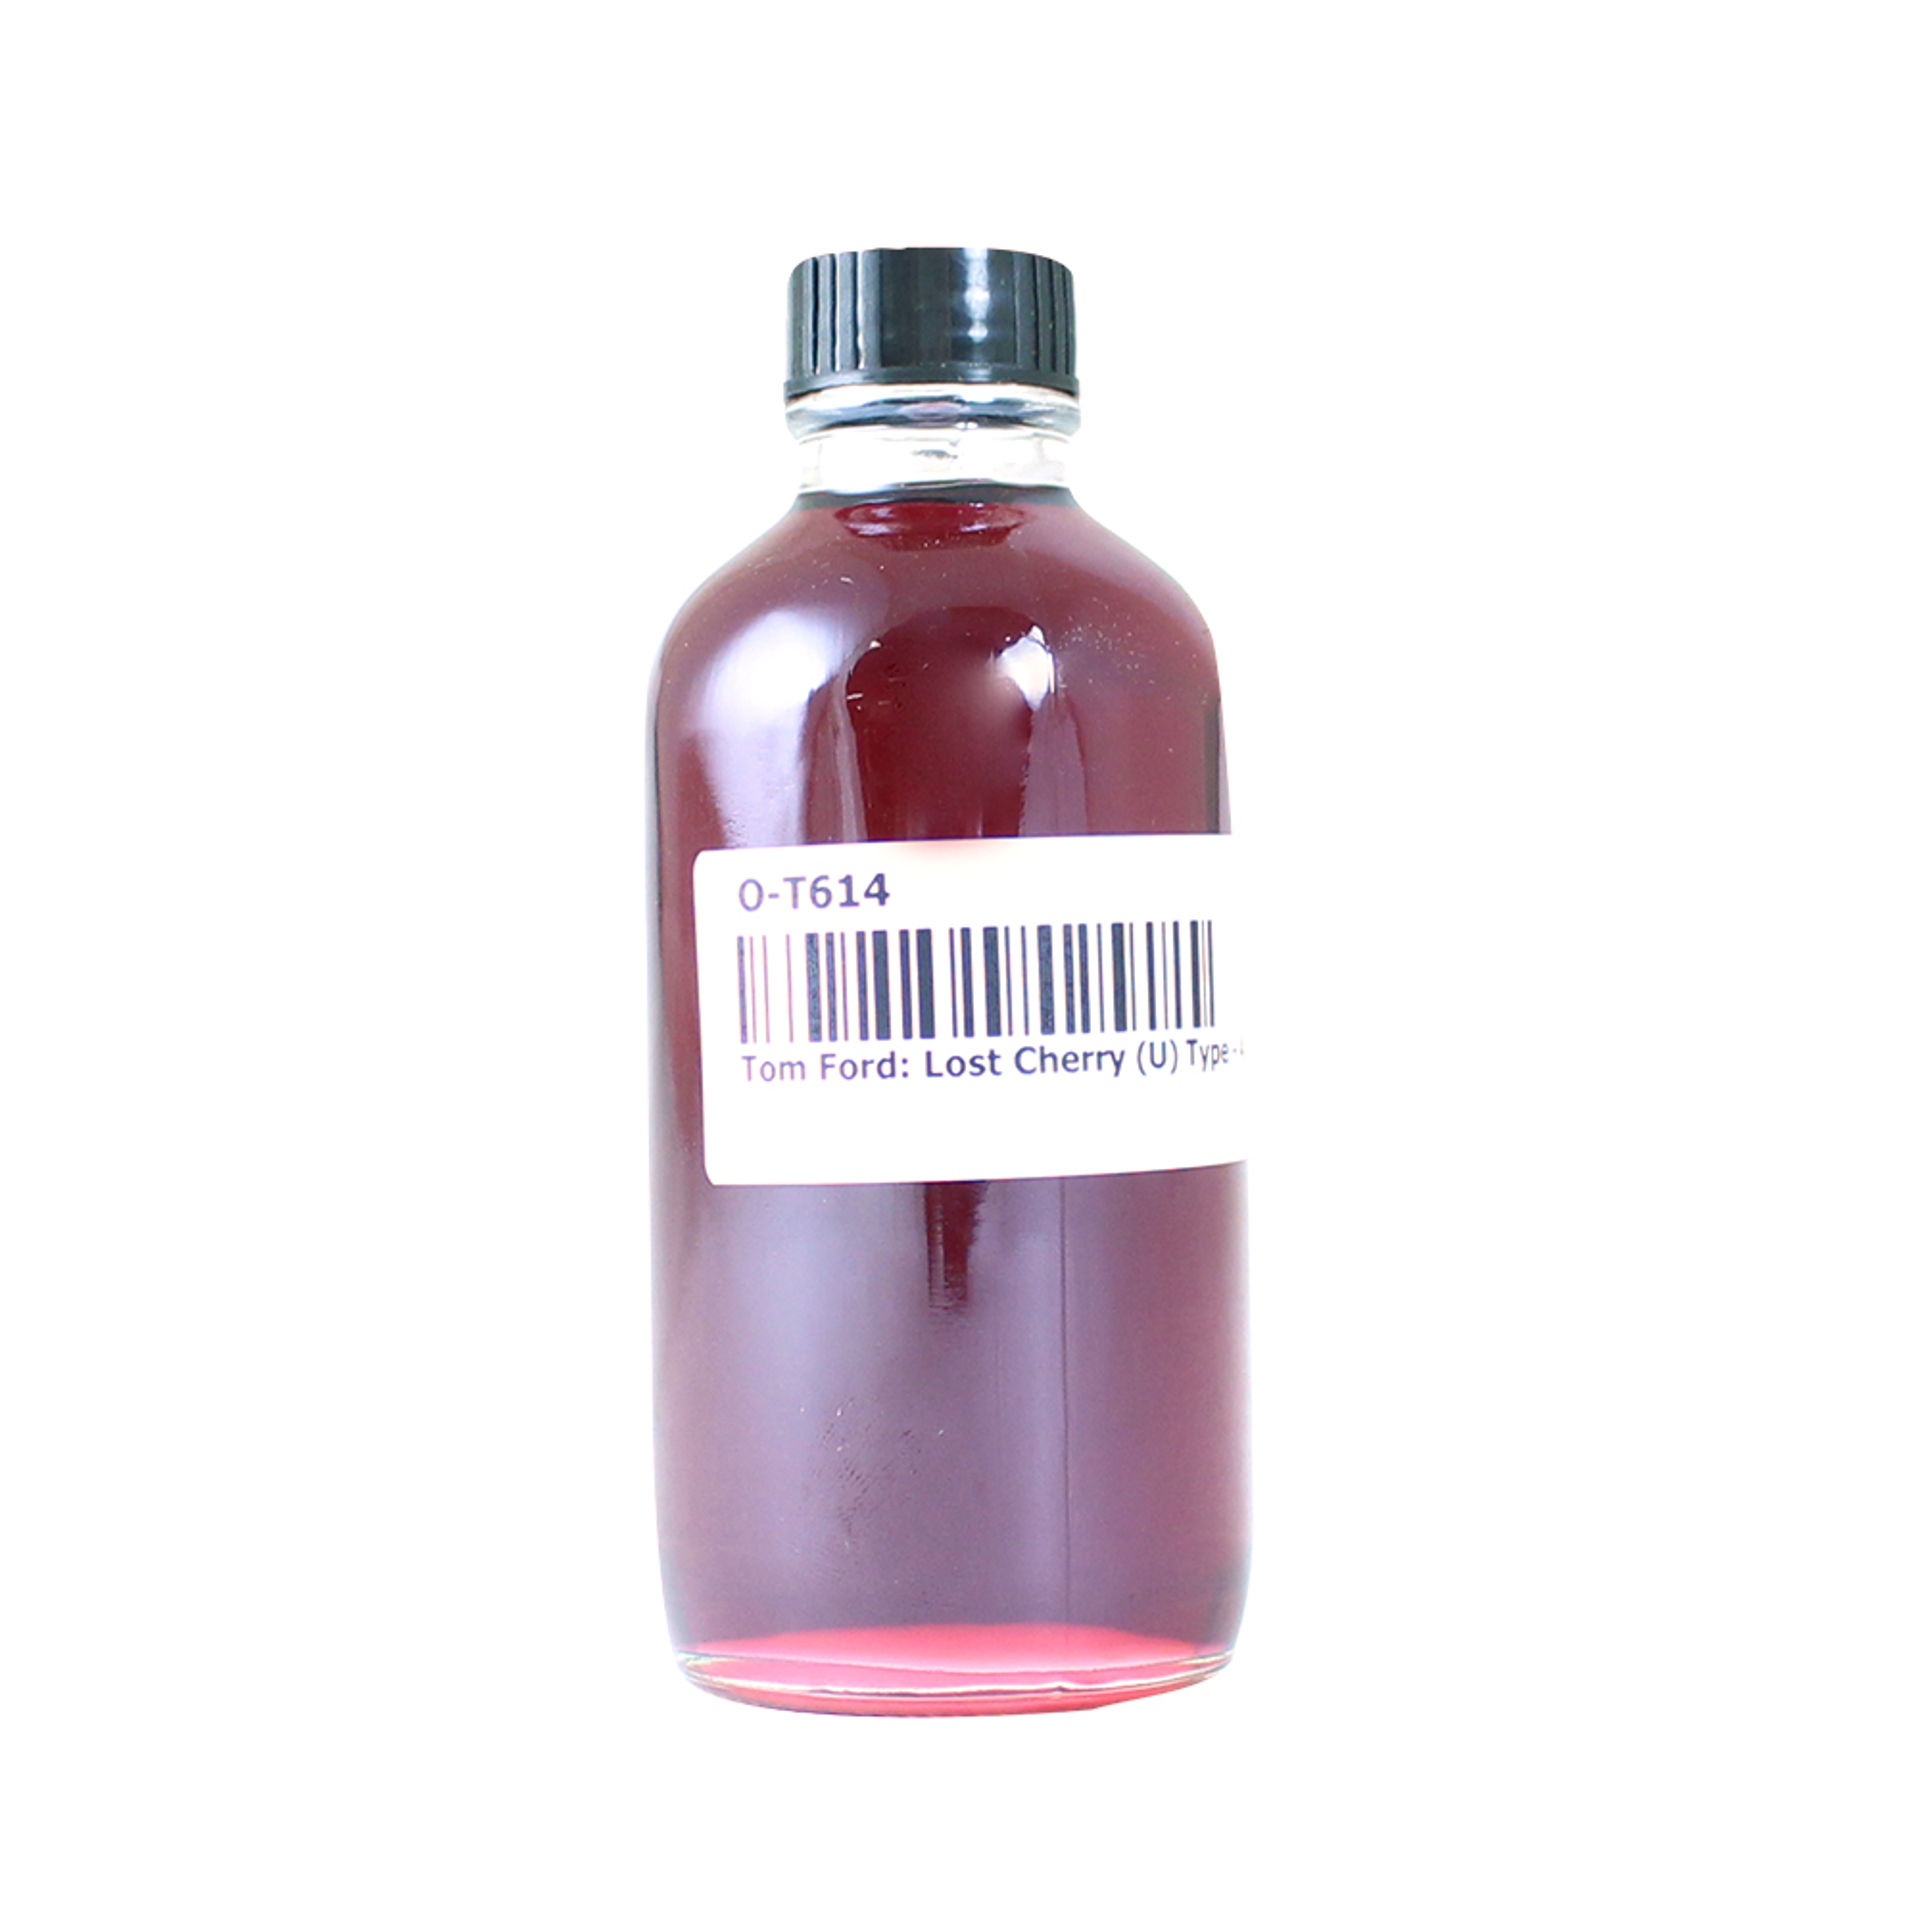 Picture of Tom Ford: Lost Cherry (U) Type - 4 oz.